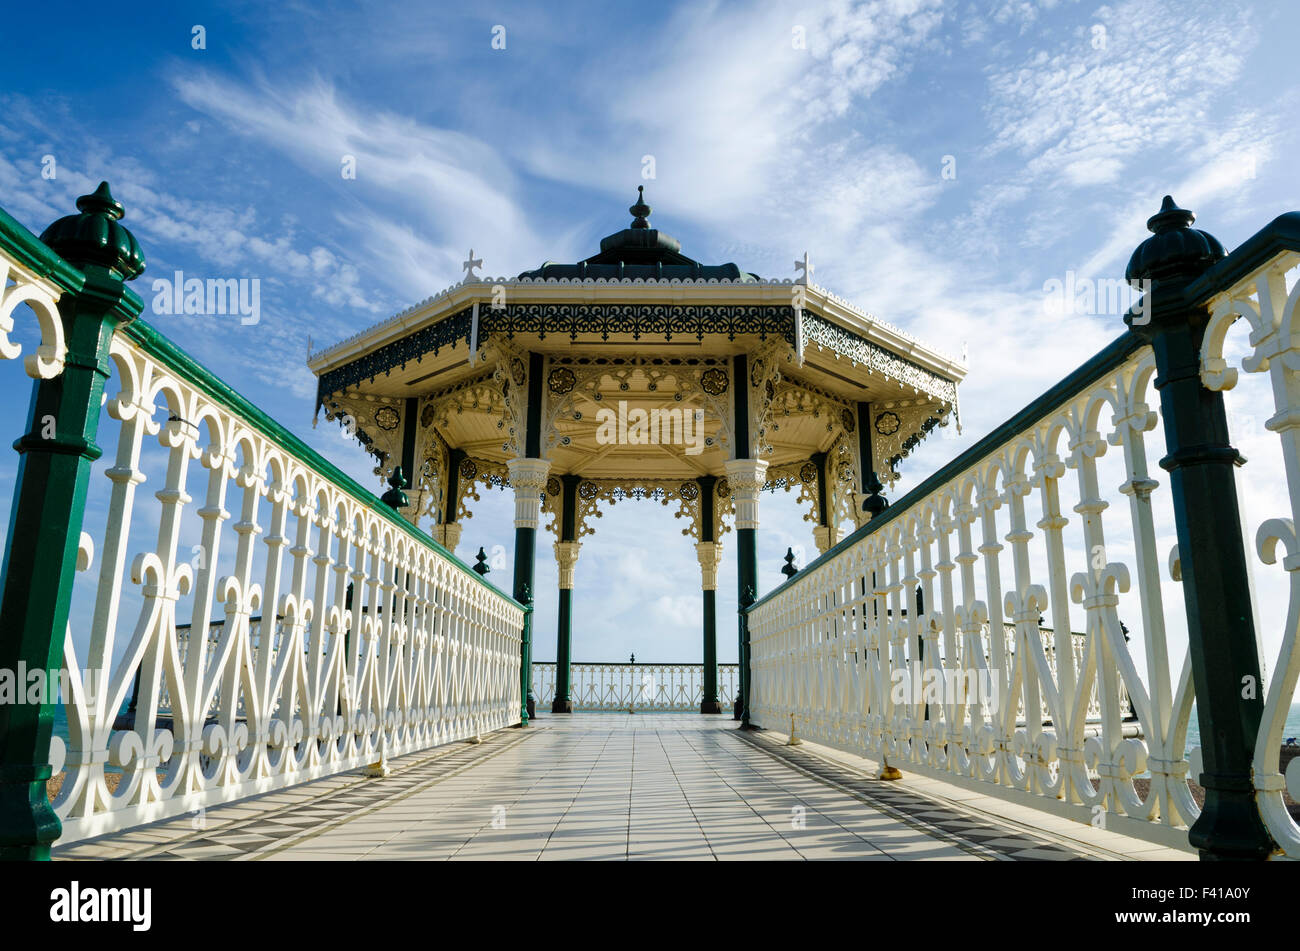 The Bandstand on the Brighton and Hove seafront in summer, East Sussex, England. - Stock Image